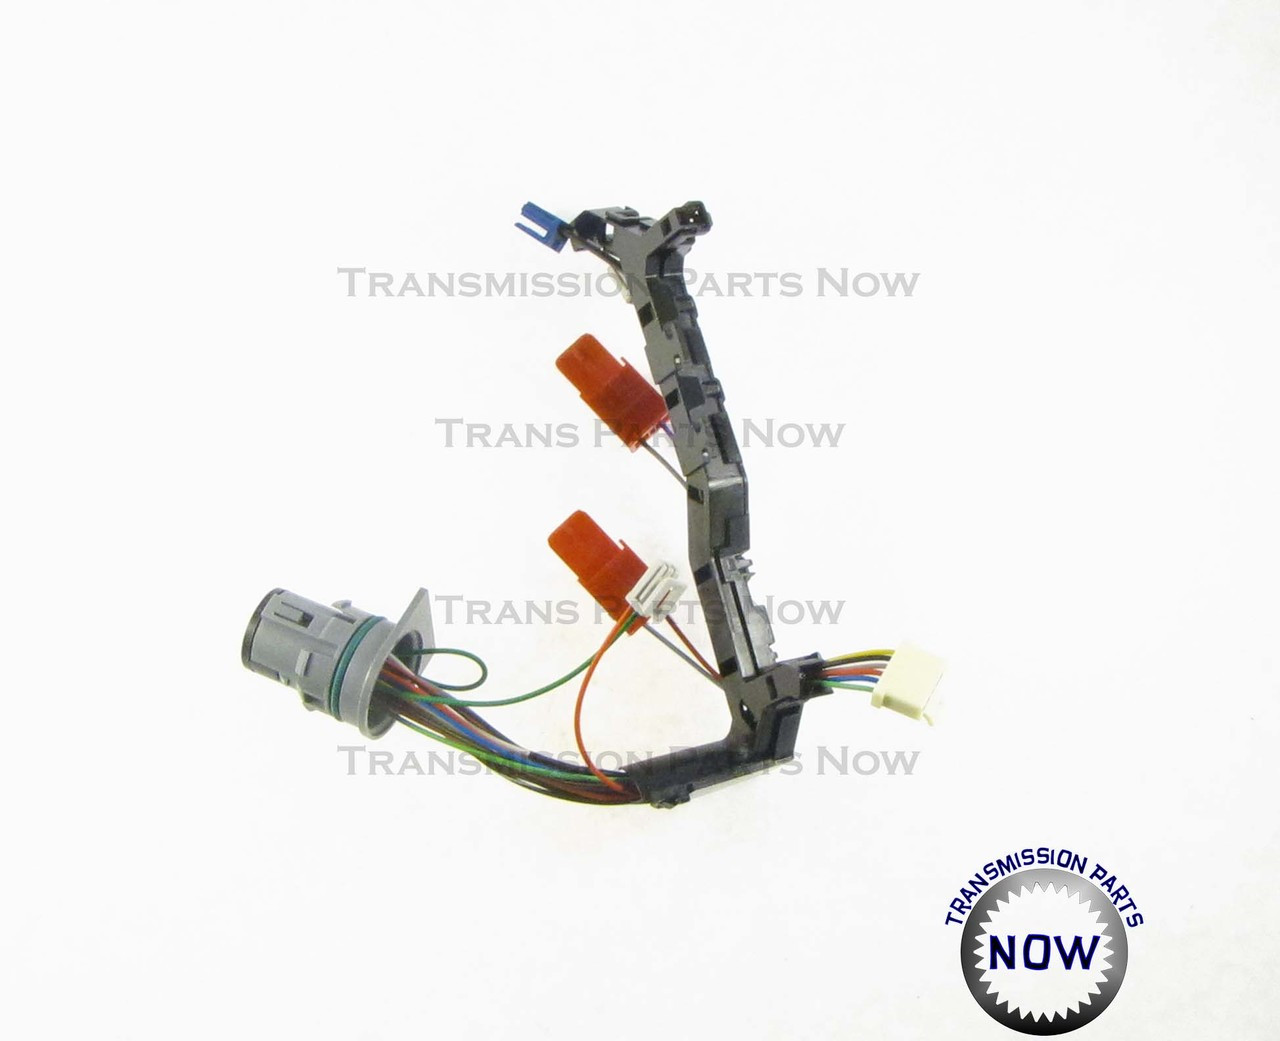 1999 3 8 Transmission Wiring Harness : Allison transmission wire harness made in the usa rostra